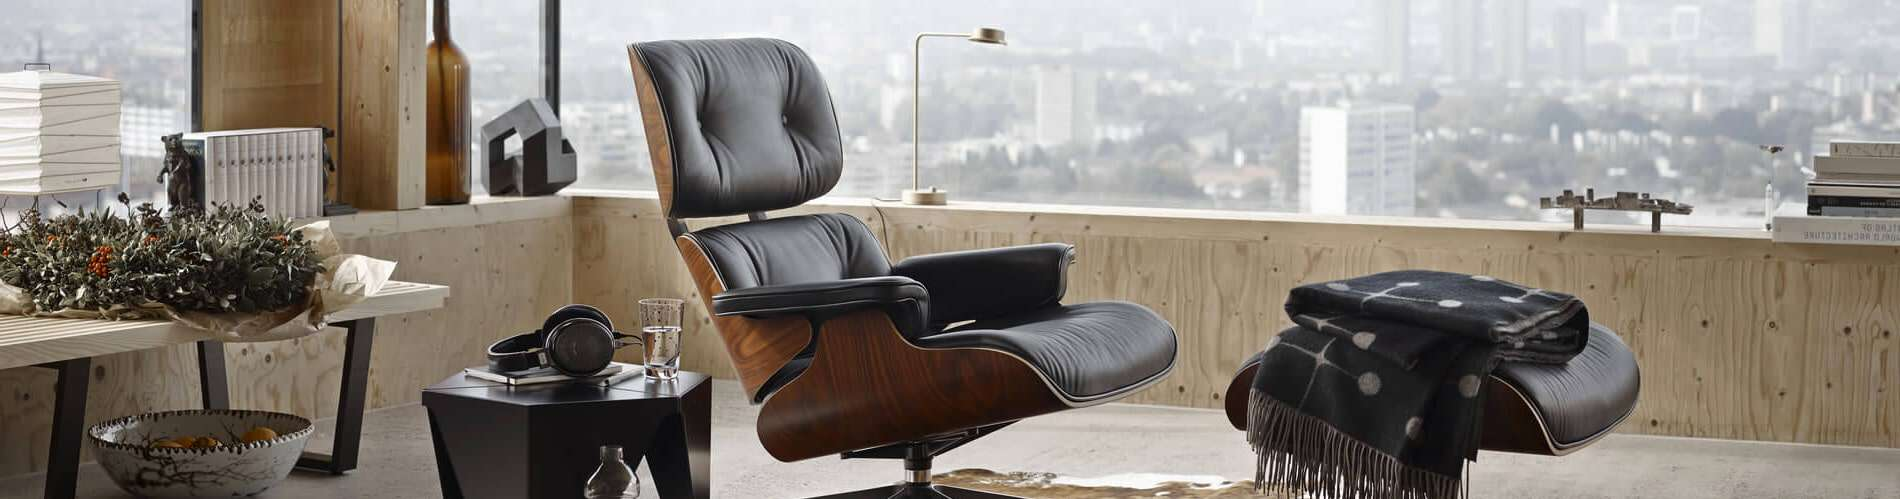 eames lounge chair landing page banner - byBESPOEK